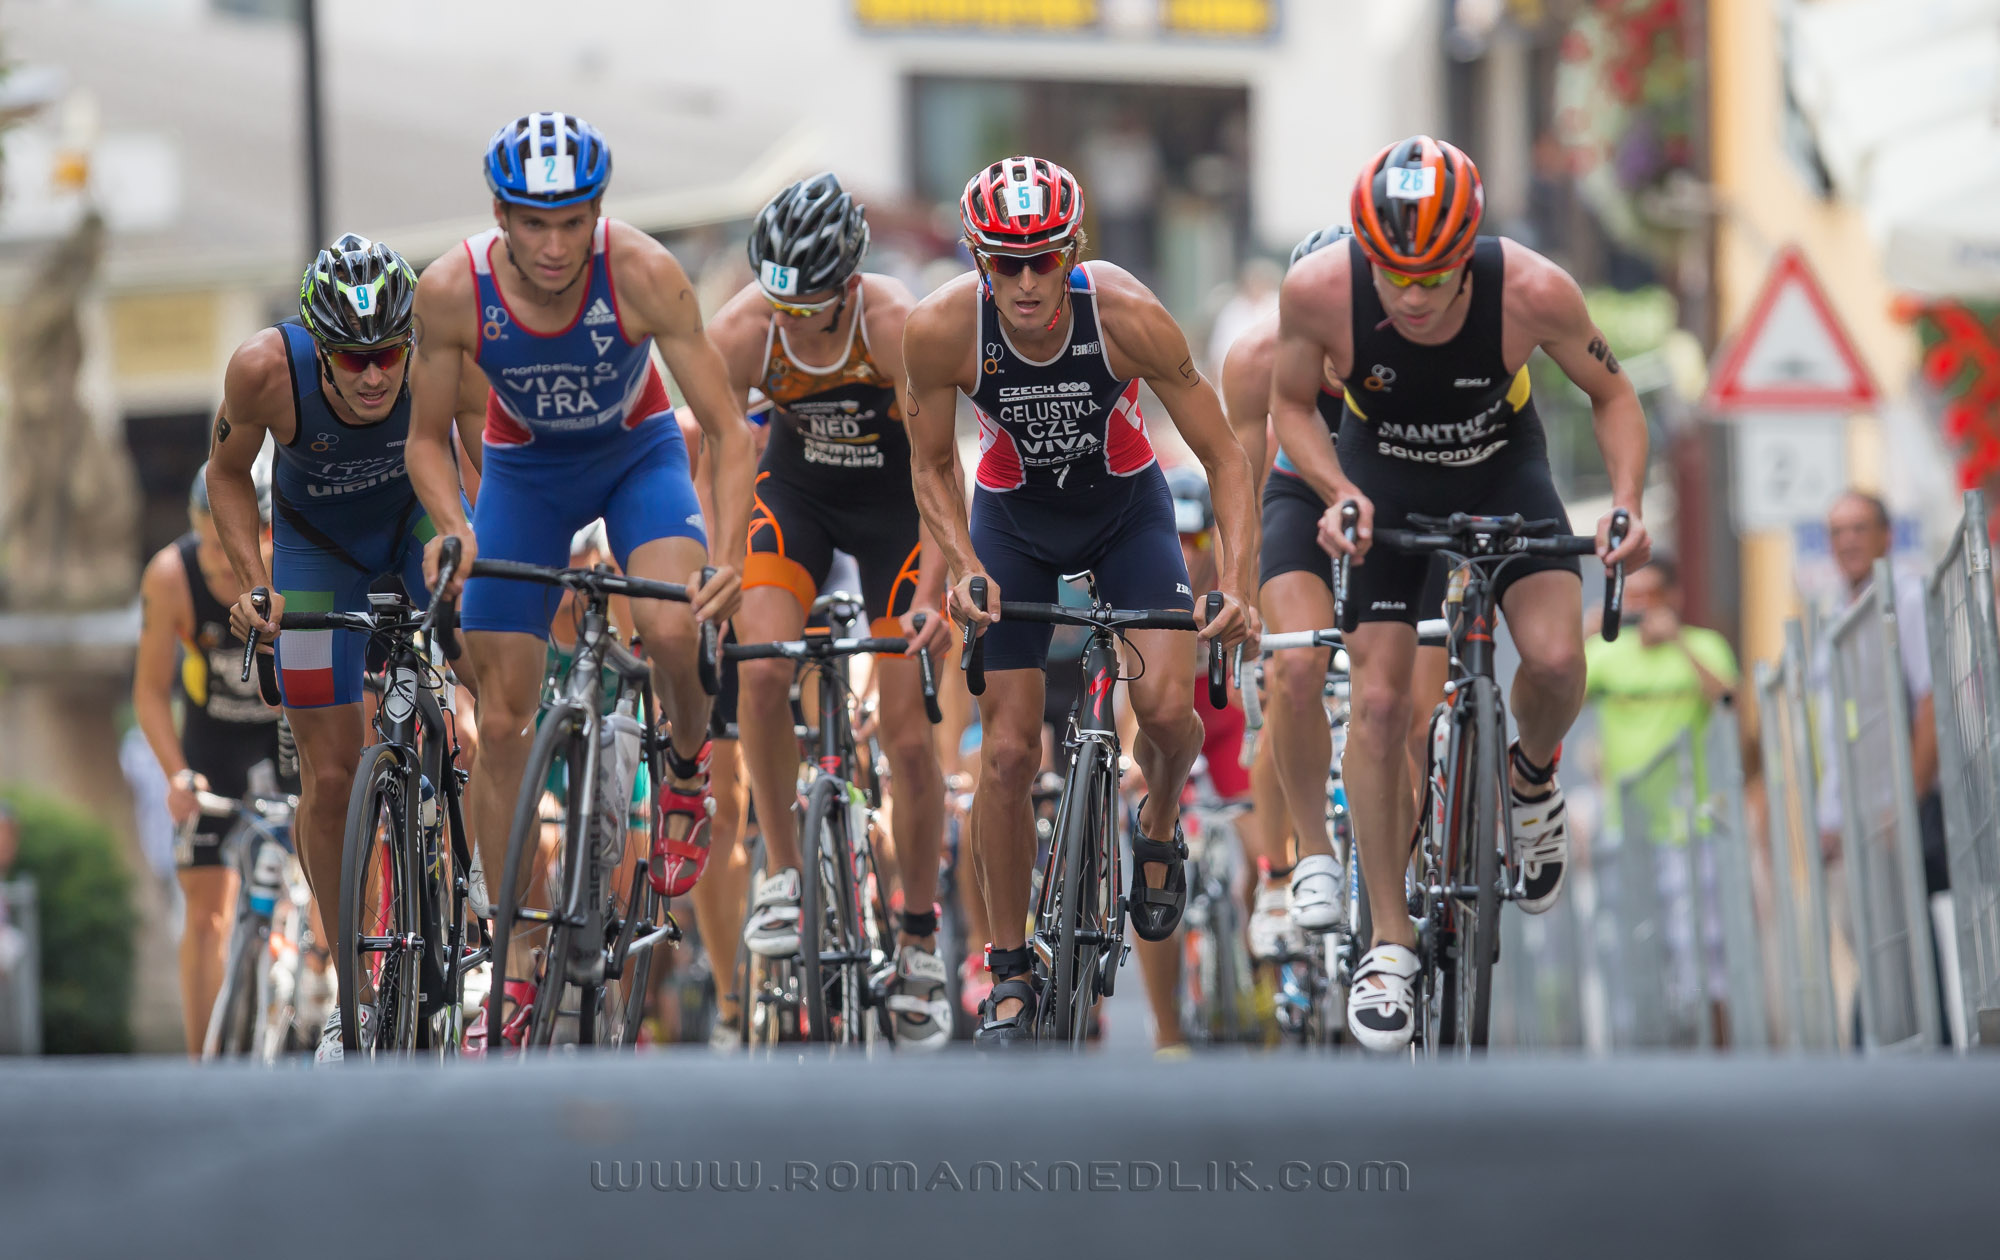 City_triatlon_2016-34